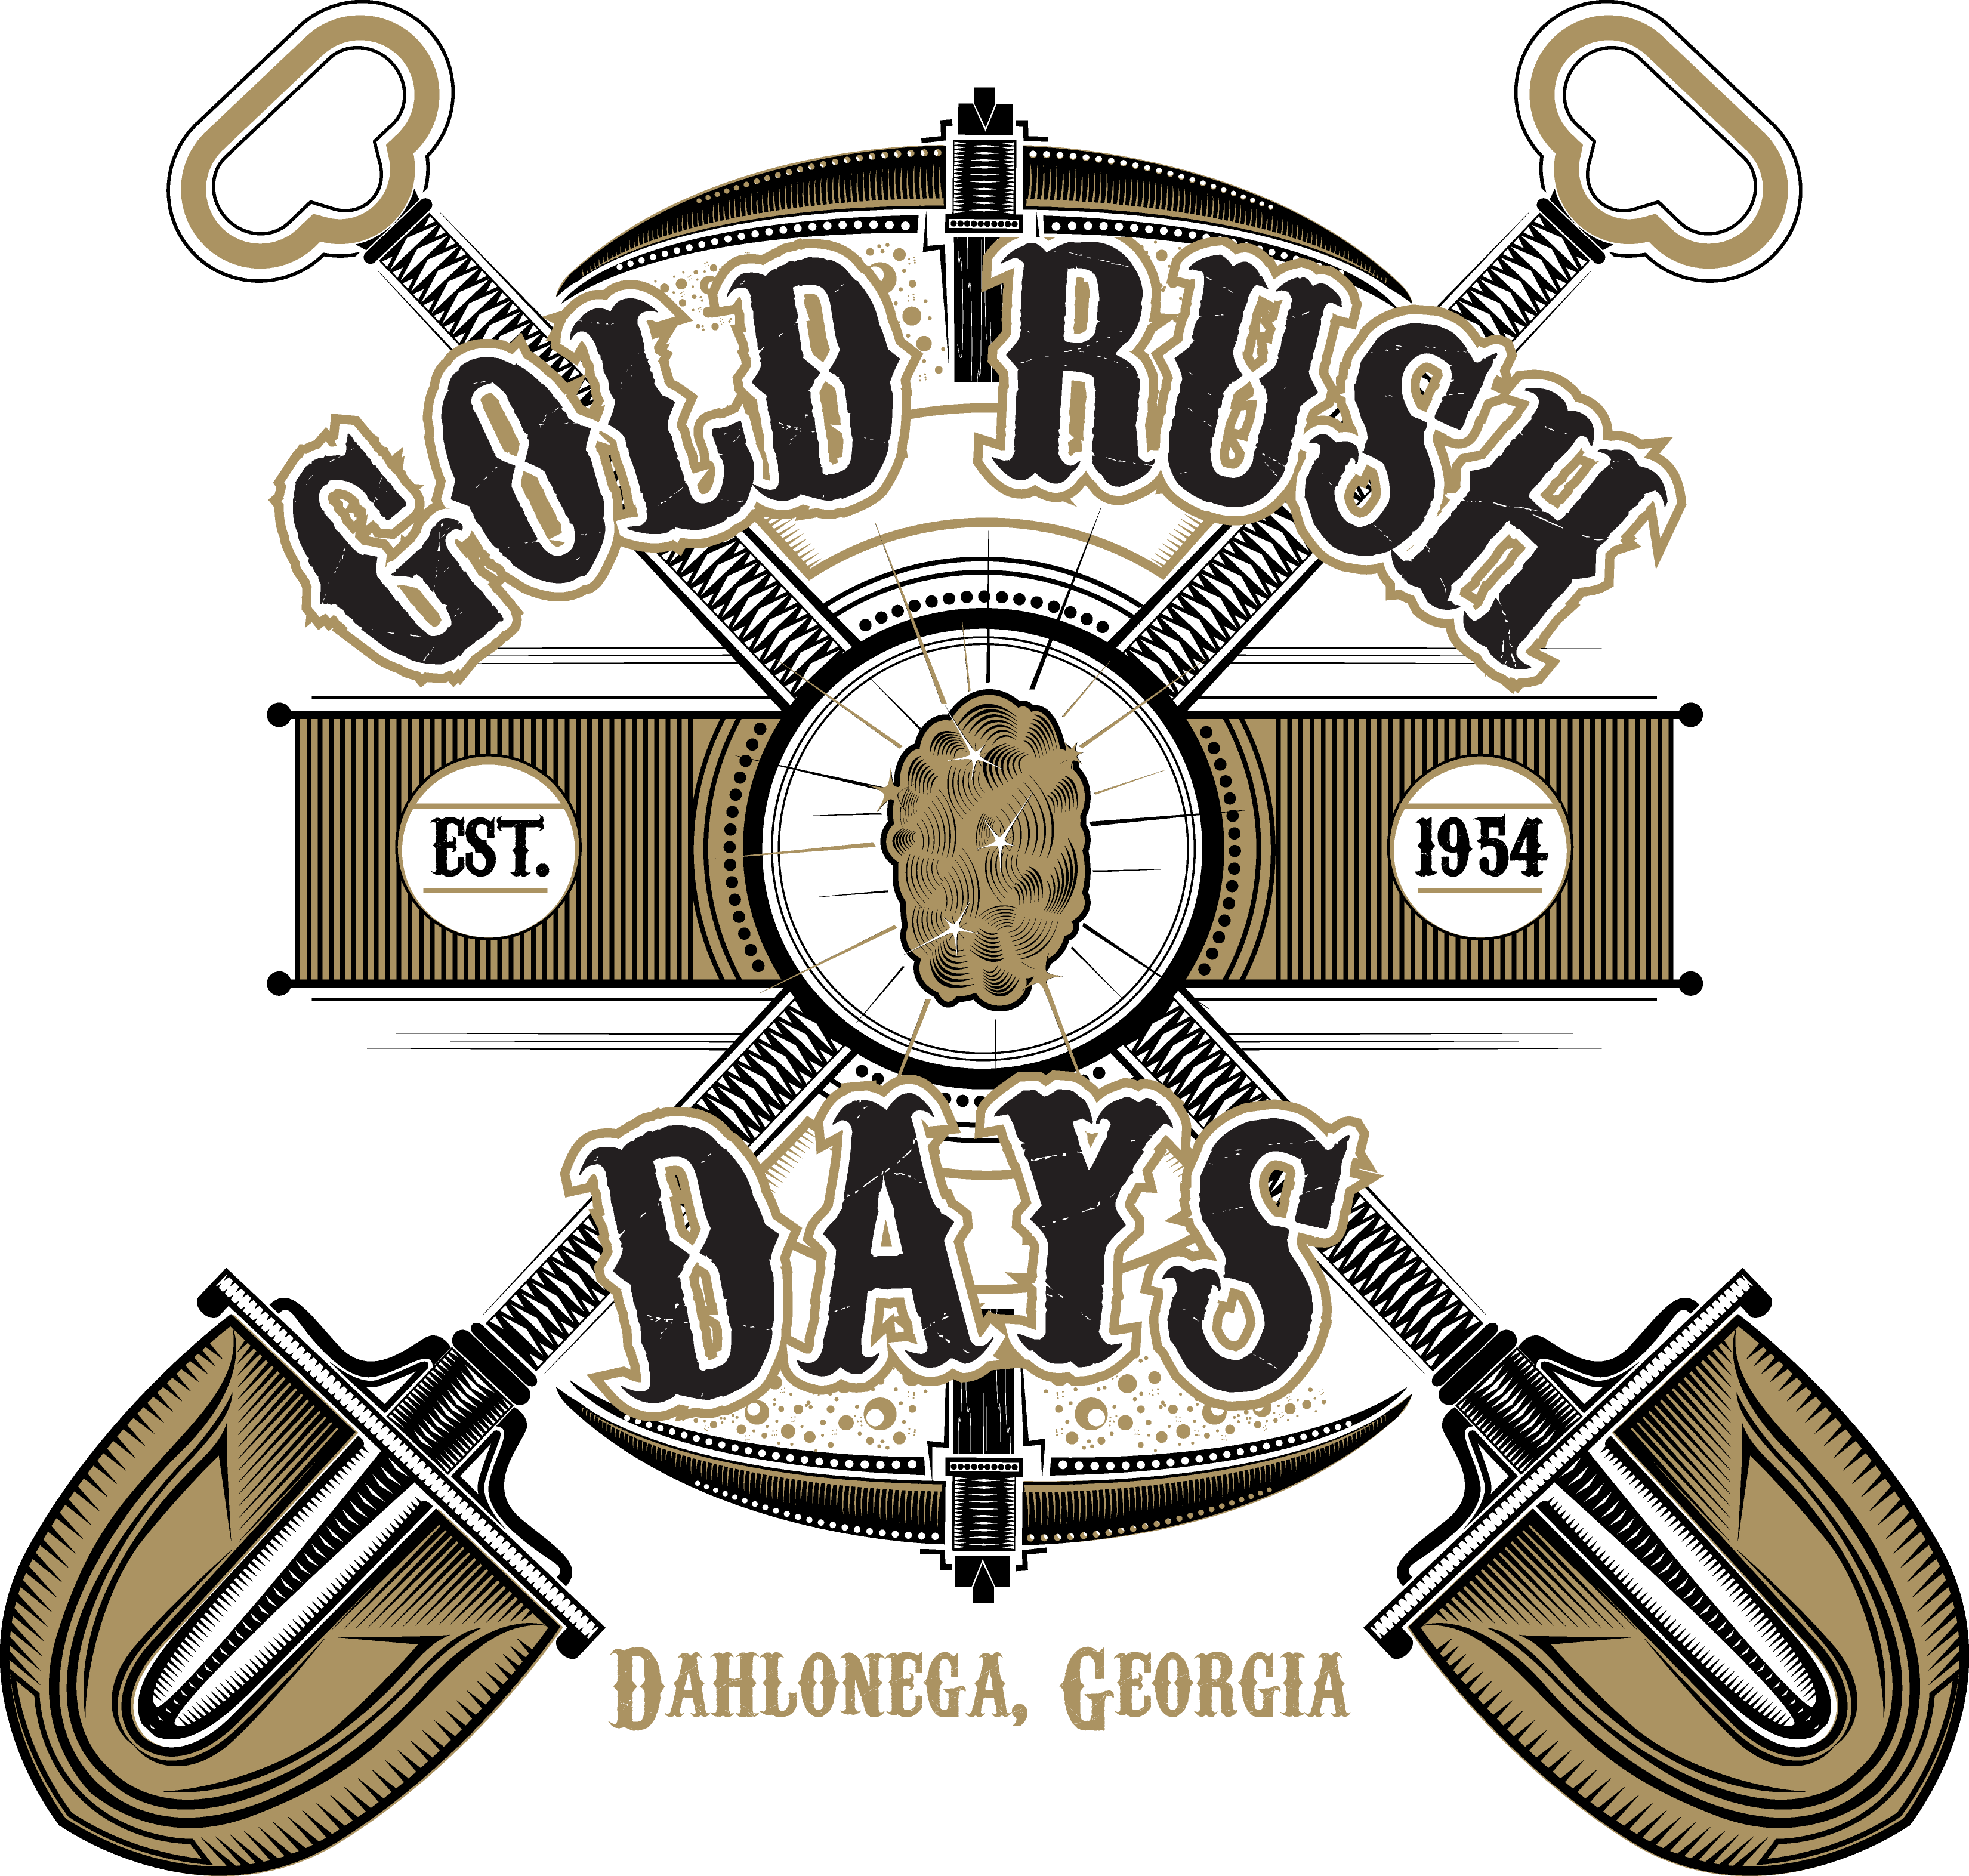 Gold Rush Days Festival   The Official Website of the Famous